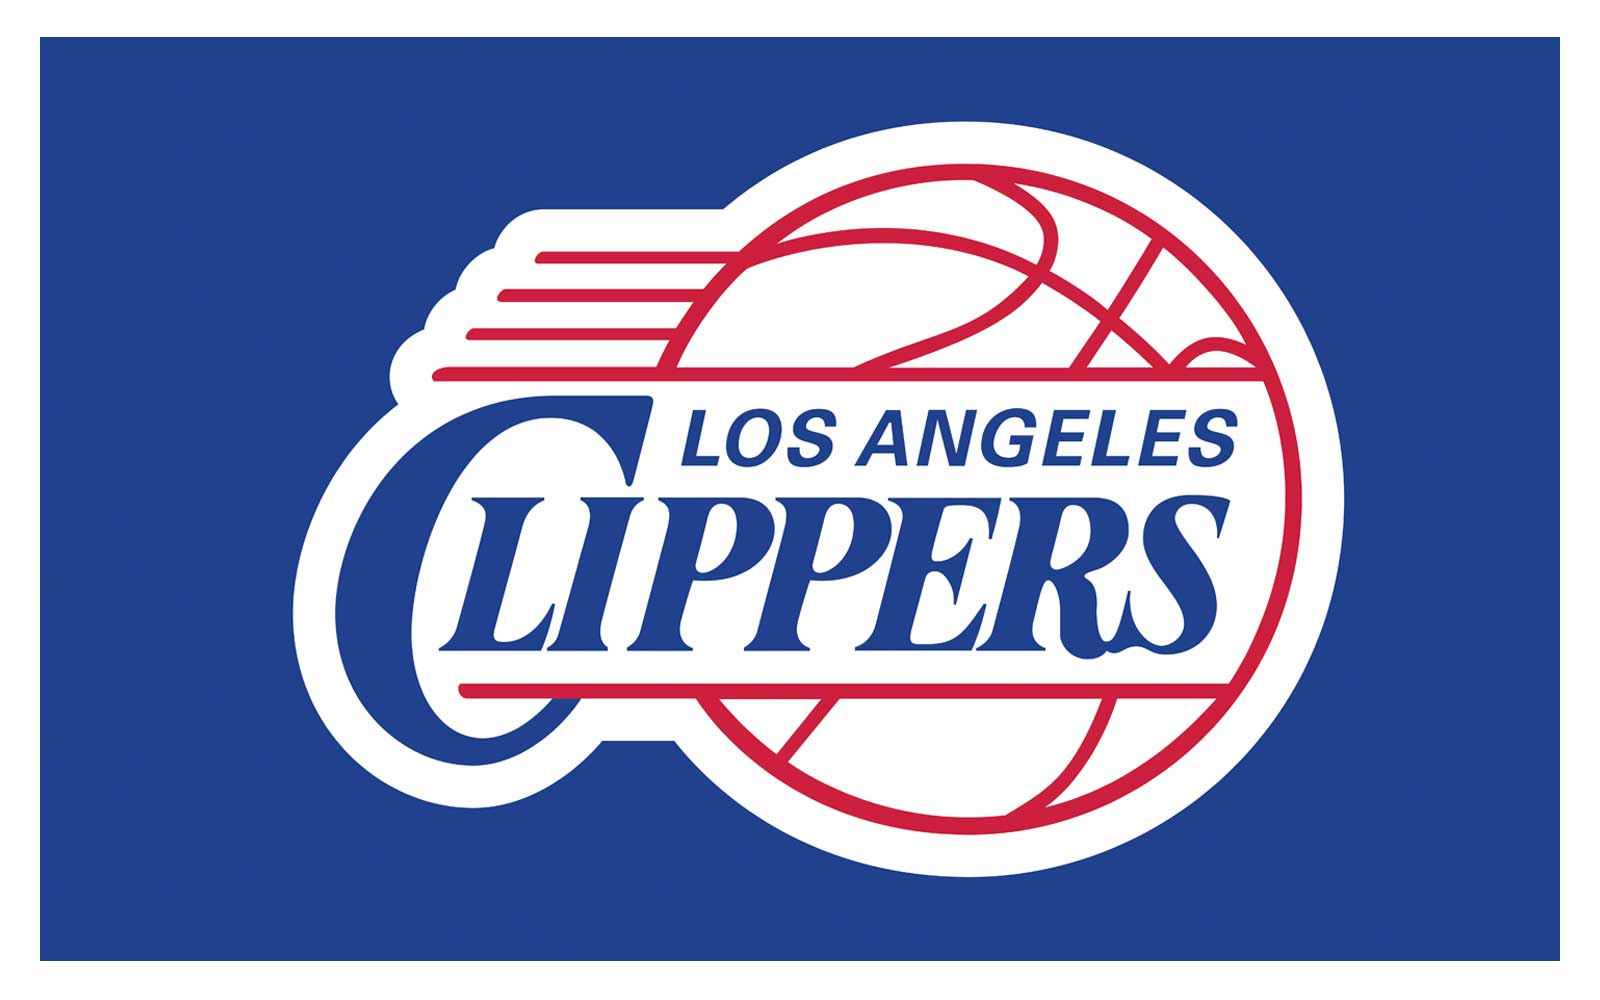 Los Angeles Clippers We Are Basket